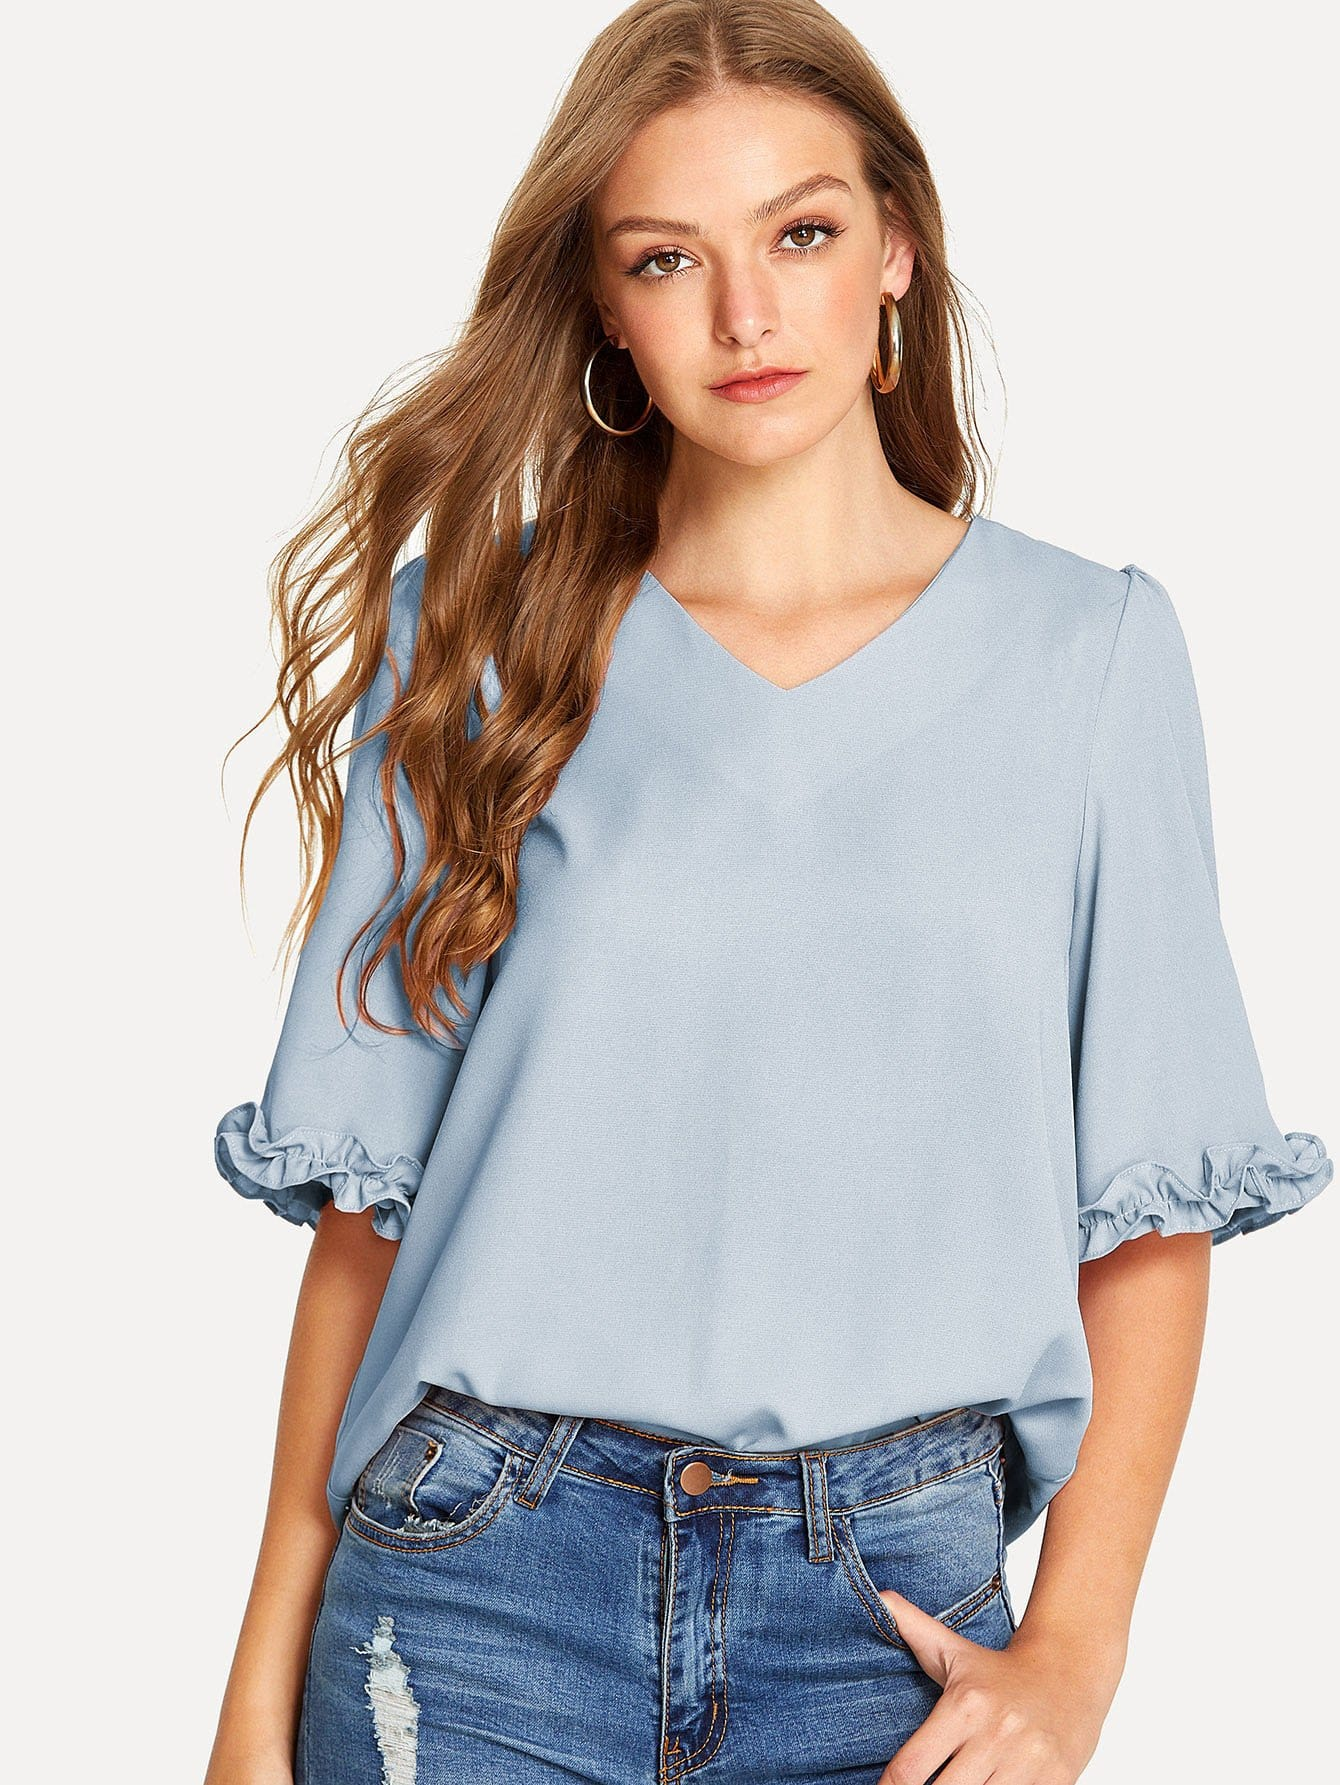 Midi Sleeves With Frill Trim Blouse frill trim blouse with denim skirt